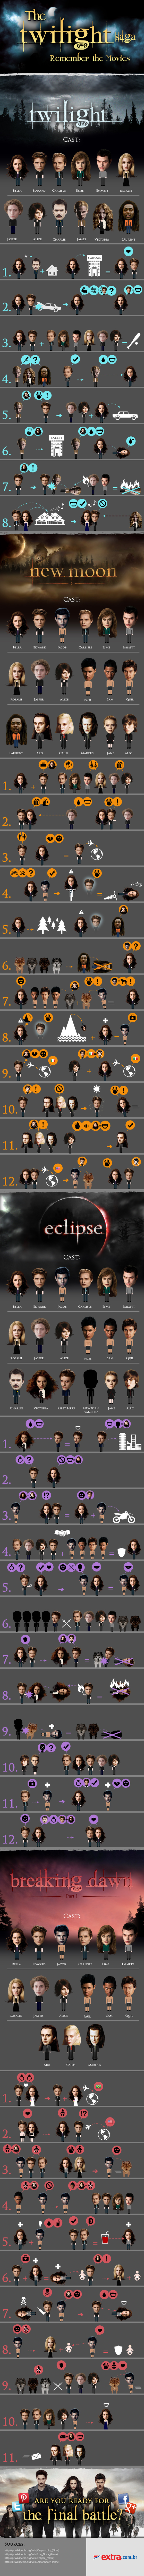 the-twilight-saga_508db3ba0a928